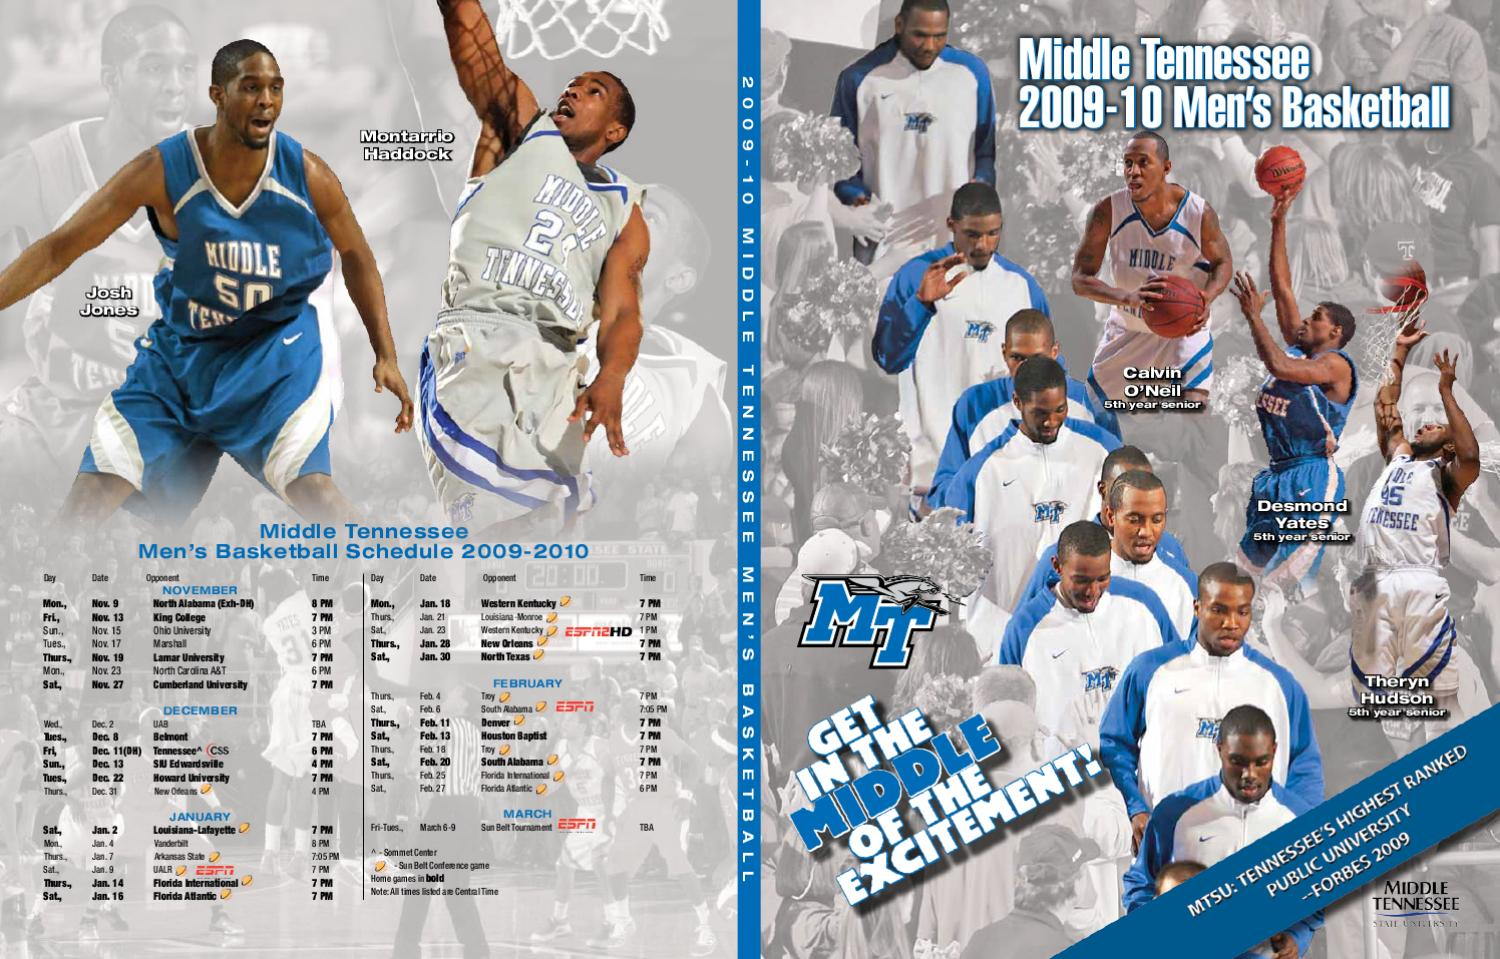 2009-10 Men s Basketball Meida Guide by Middle Tennessee State University -  issuu a717b1502c